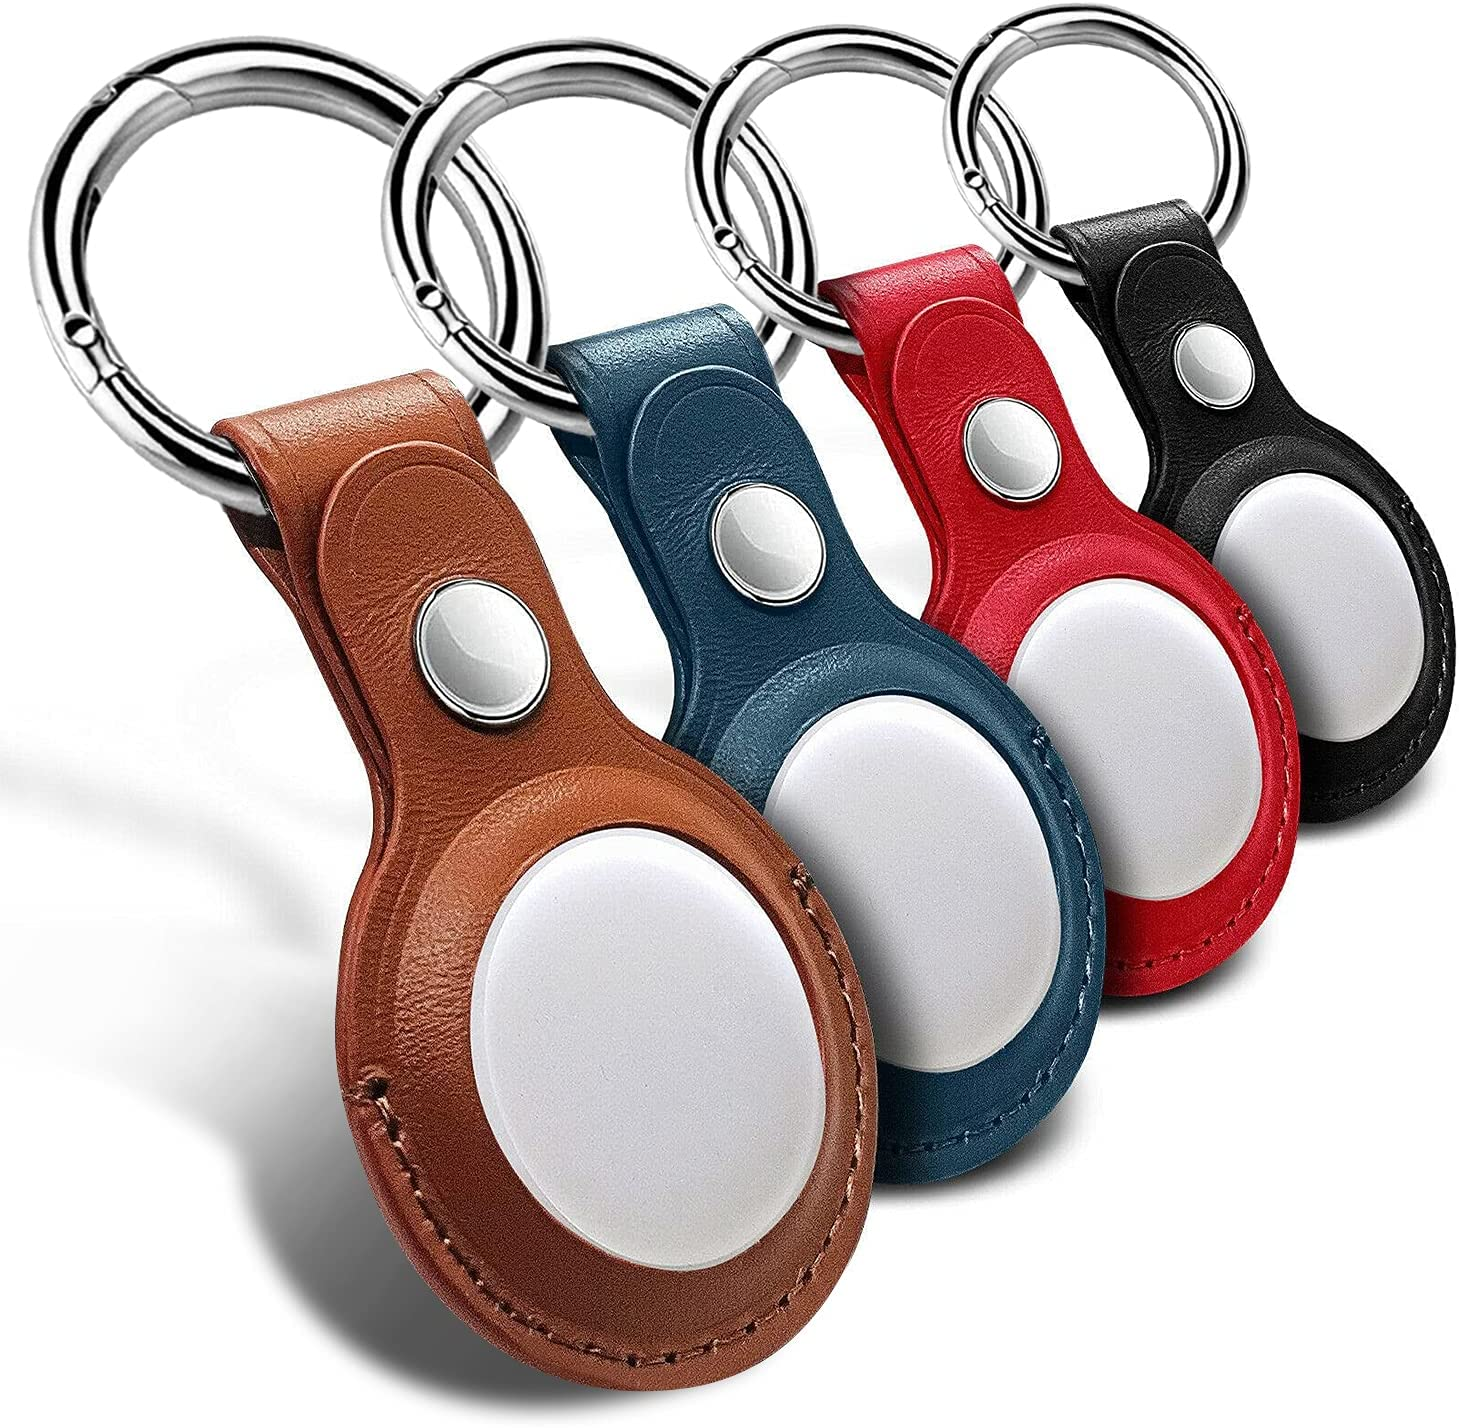 Leather Case for Apple AirTag Tracker, 4 Pack AirTags Case with Anti-Lost Keychain,Protective AirTag Keychain Holder Cases Cover, Finder Items for Dogs Keys Backpacks, 4Pack Multi-Color